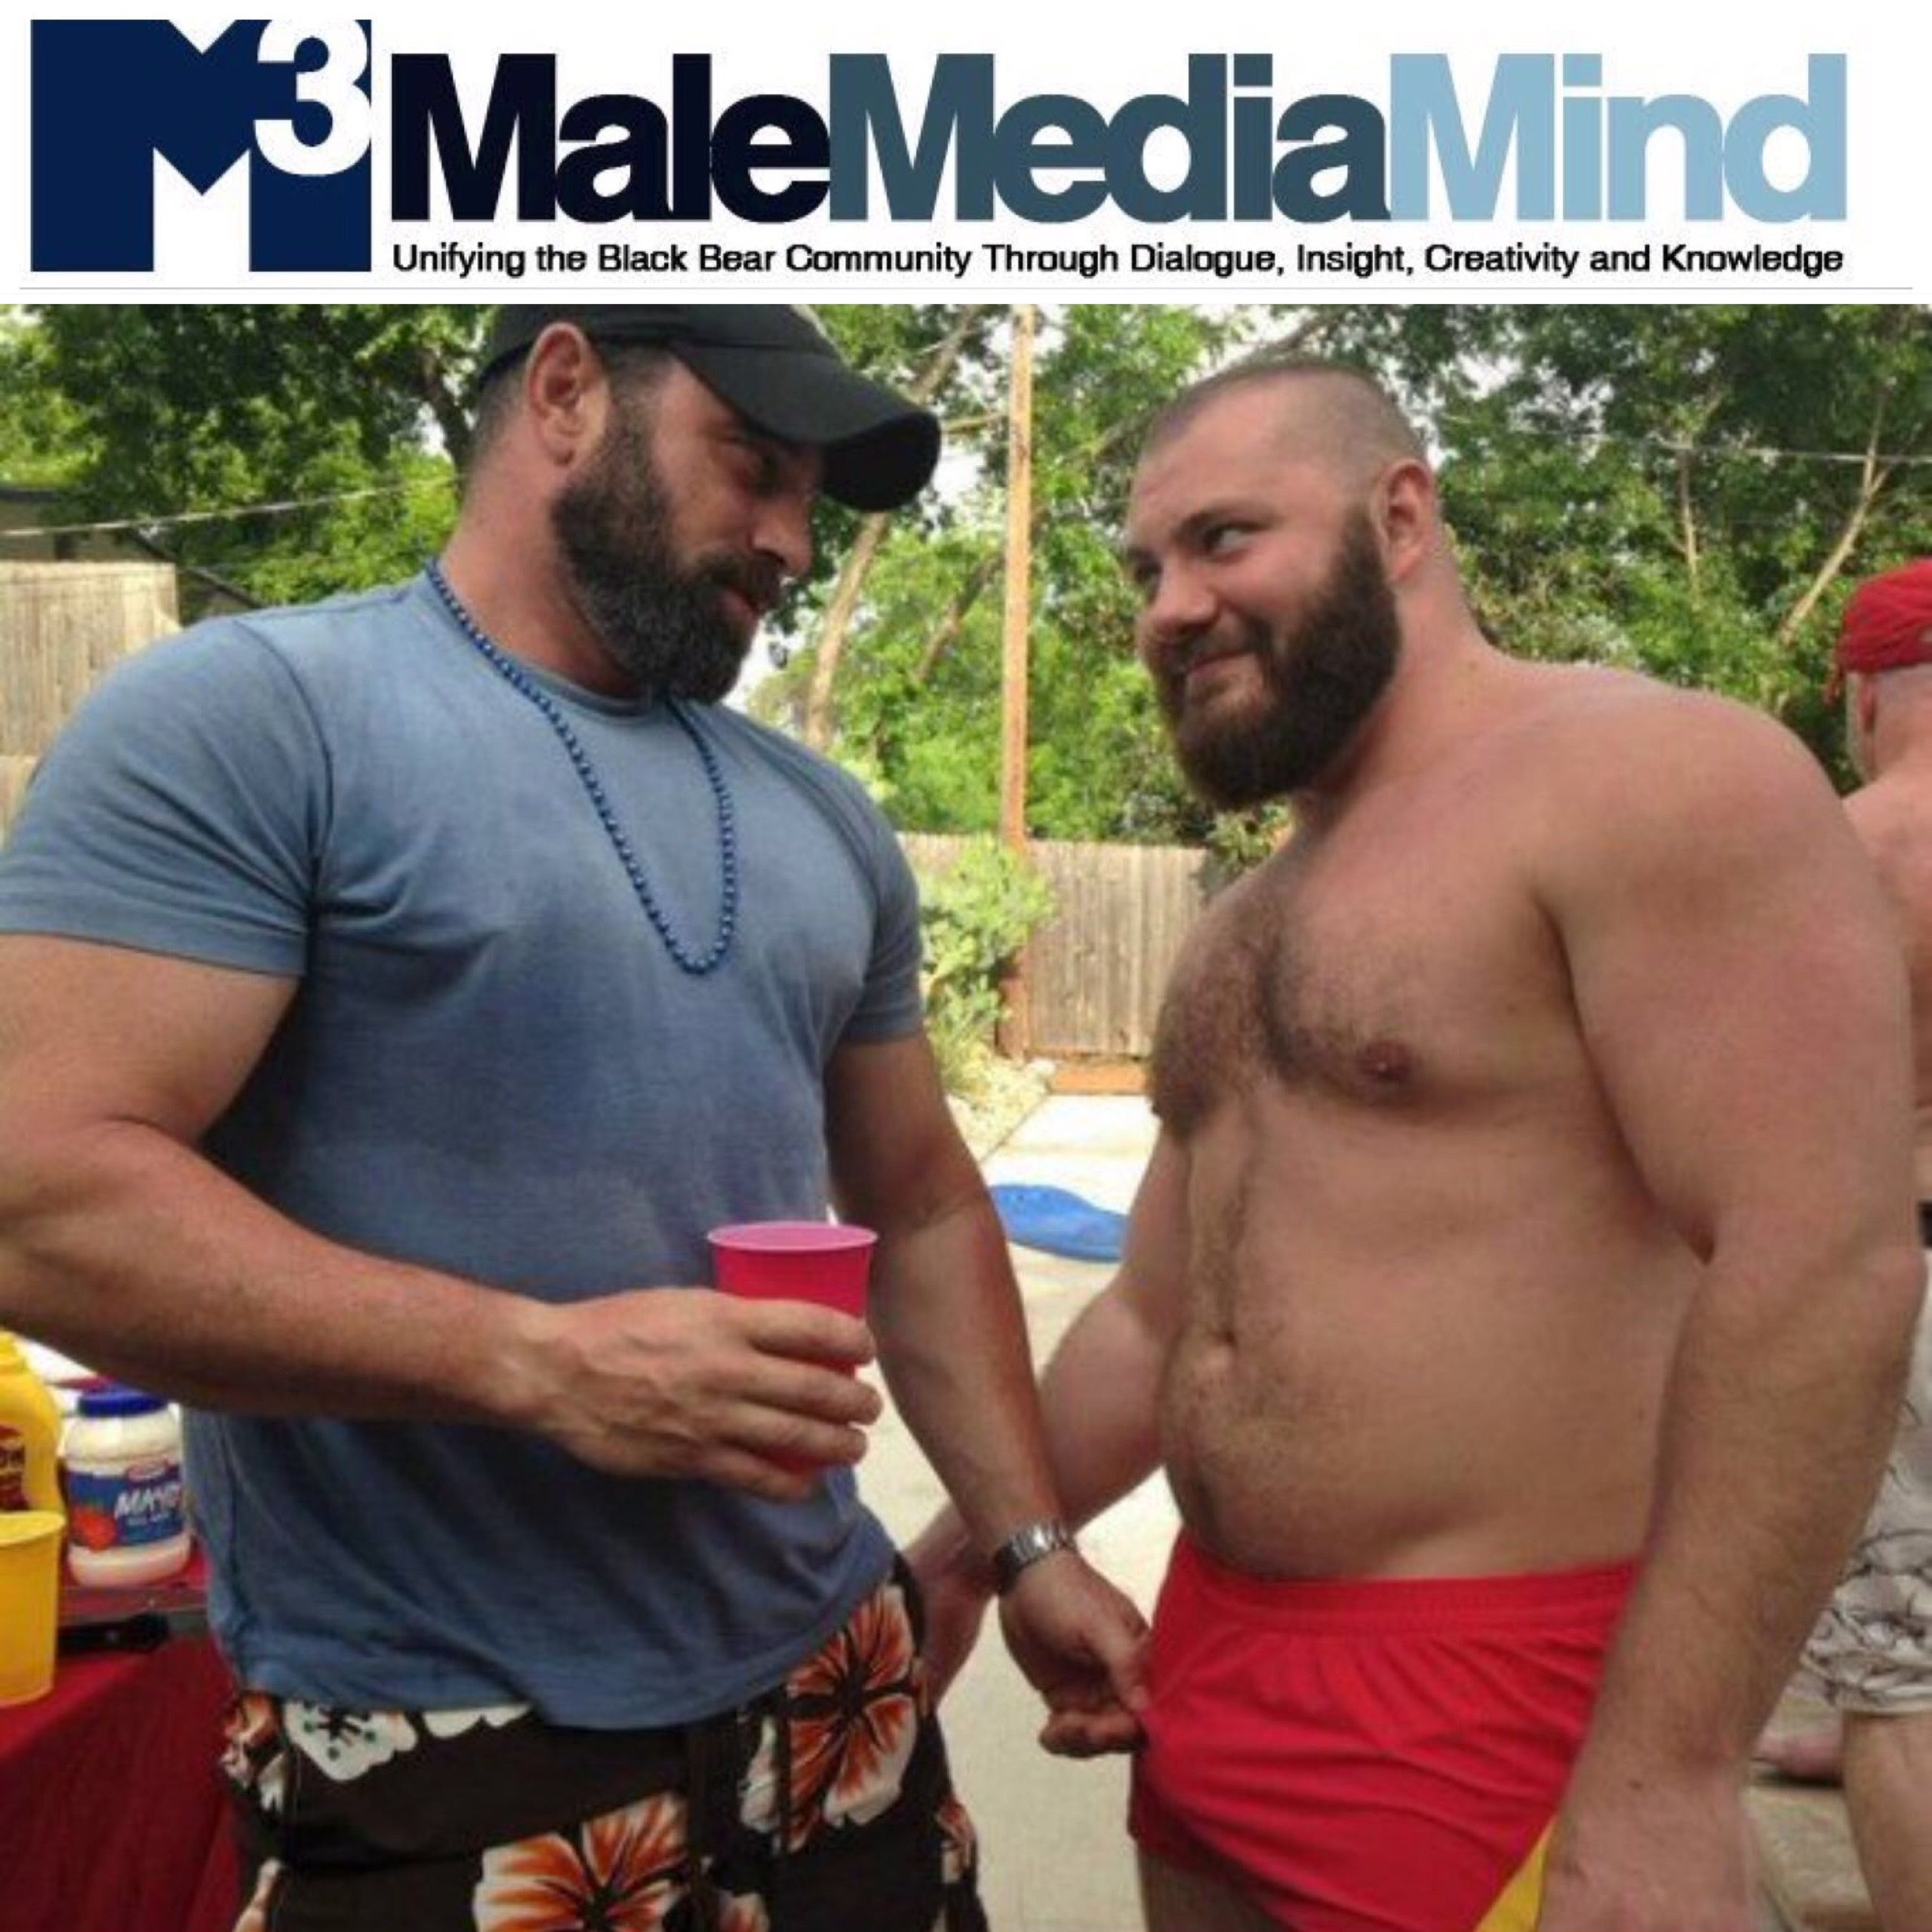 You can support M3 by subscribing at BLOG www.MaleMediaMind.com  YOUTUBE http://www.youtube.com/user/MaleMediaMind FACEBOOK https://www.facebook.com/MaleMediaMind TUMBLR http://MaleMediaMind.tumblr.com/ #MaleMediaMind #LGBT #thick #sexy #hairy #handsome #muscle #daddy #bear #cub #GayMen #GayBlackMen #Chubby #BigBoi